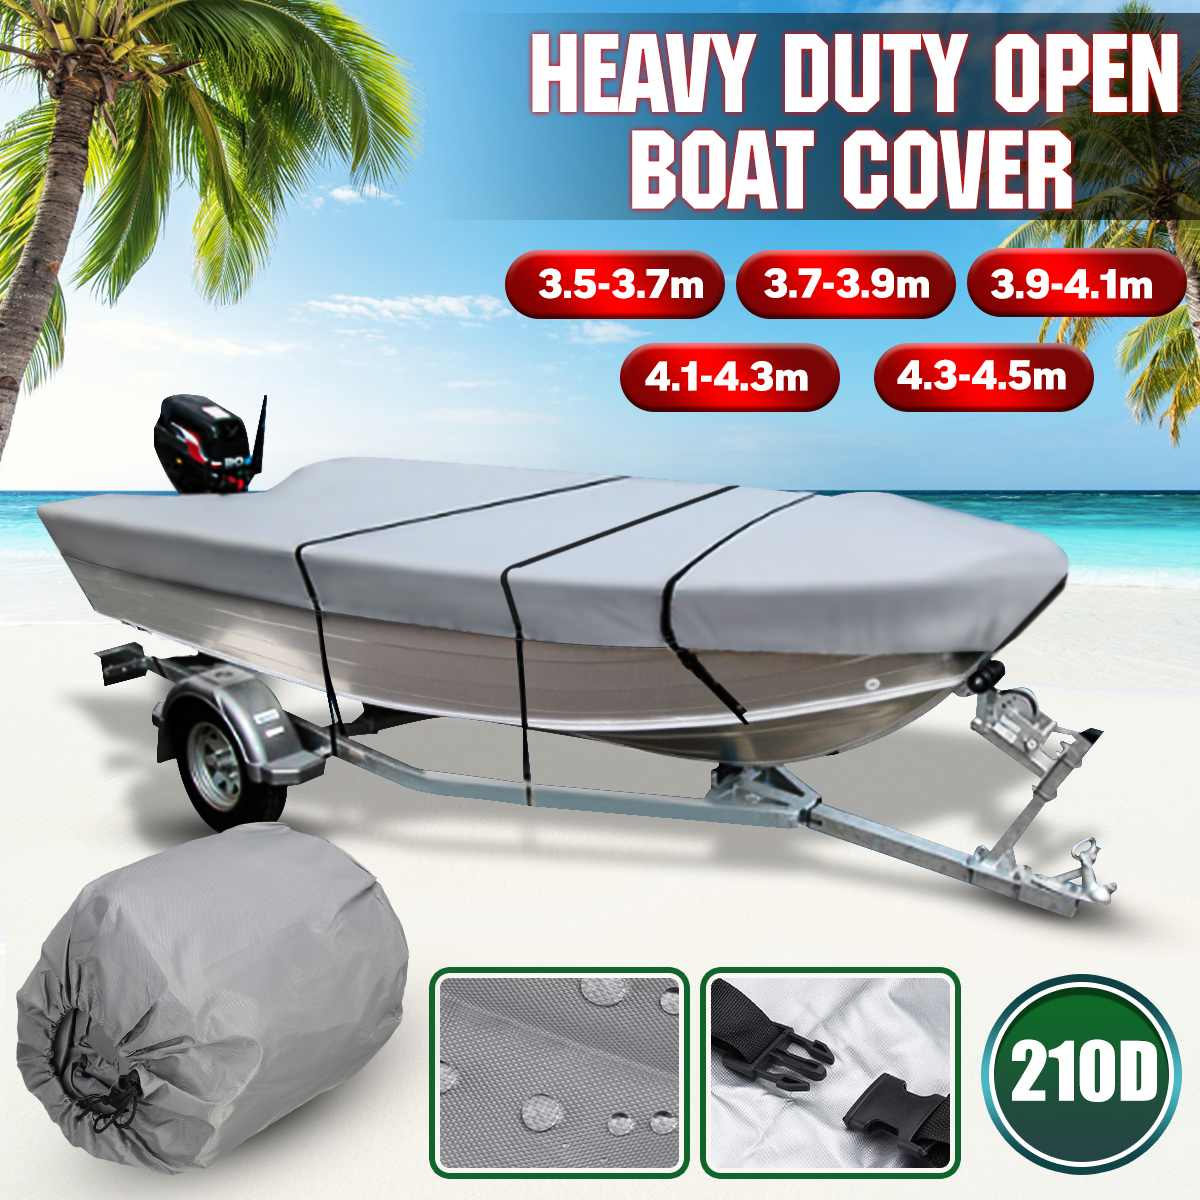 3.5-4.5m Grey Trailerable Heavy Duty Open Boat Cover Fishing Ski Runabout Waterproof 210D Sunproof Anti UV V-Hull Boat Cover